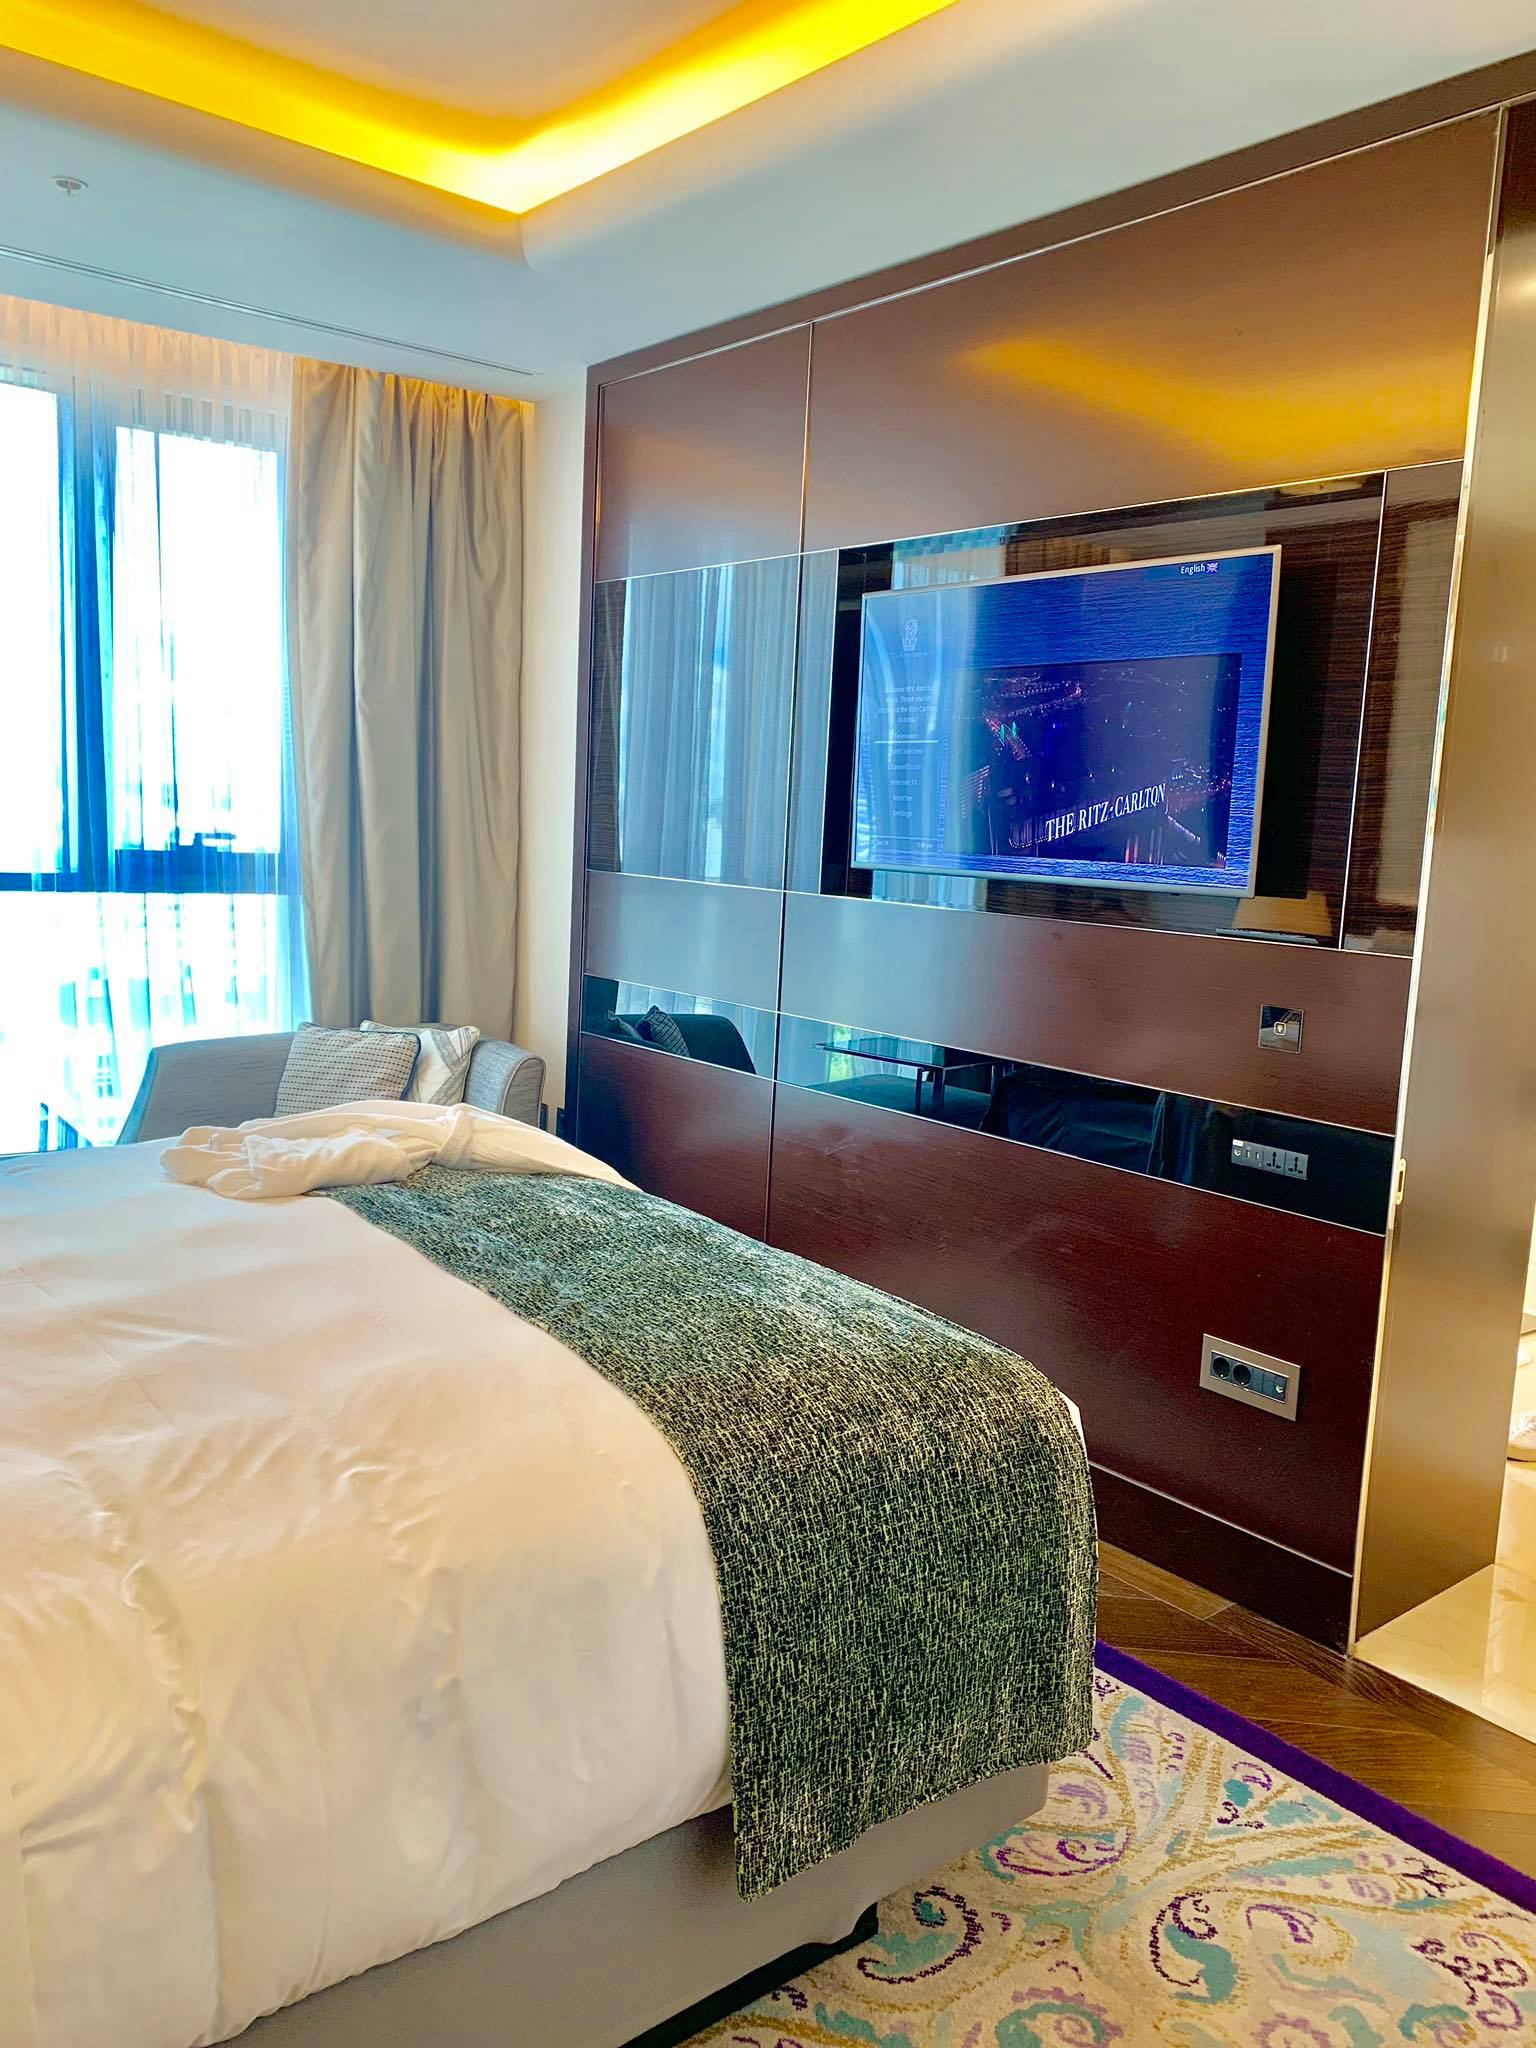 My Experience Staying at The Ritz Carlton Astana3